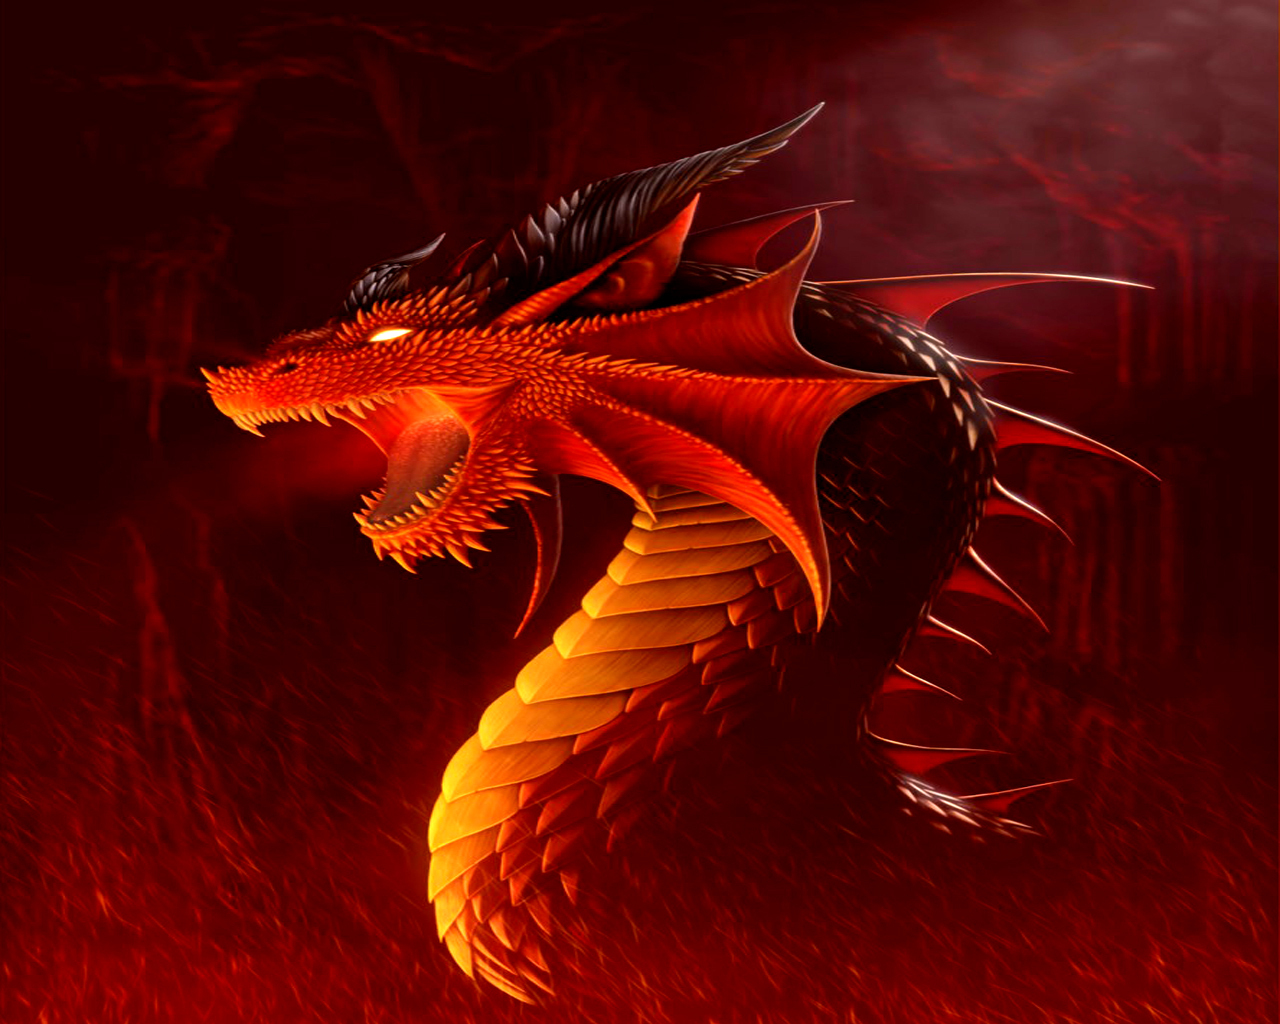 In Hunt of Survivors (Twilight Imperium, Open to all) Dragon-Wallpaper-dragons-13975553-1280-1024